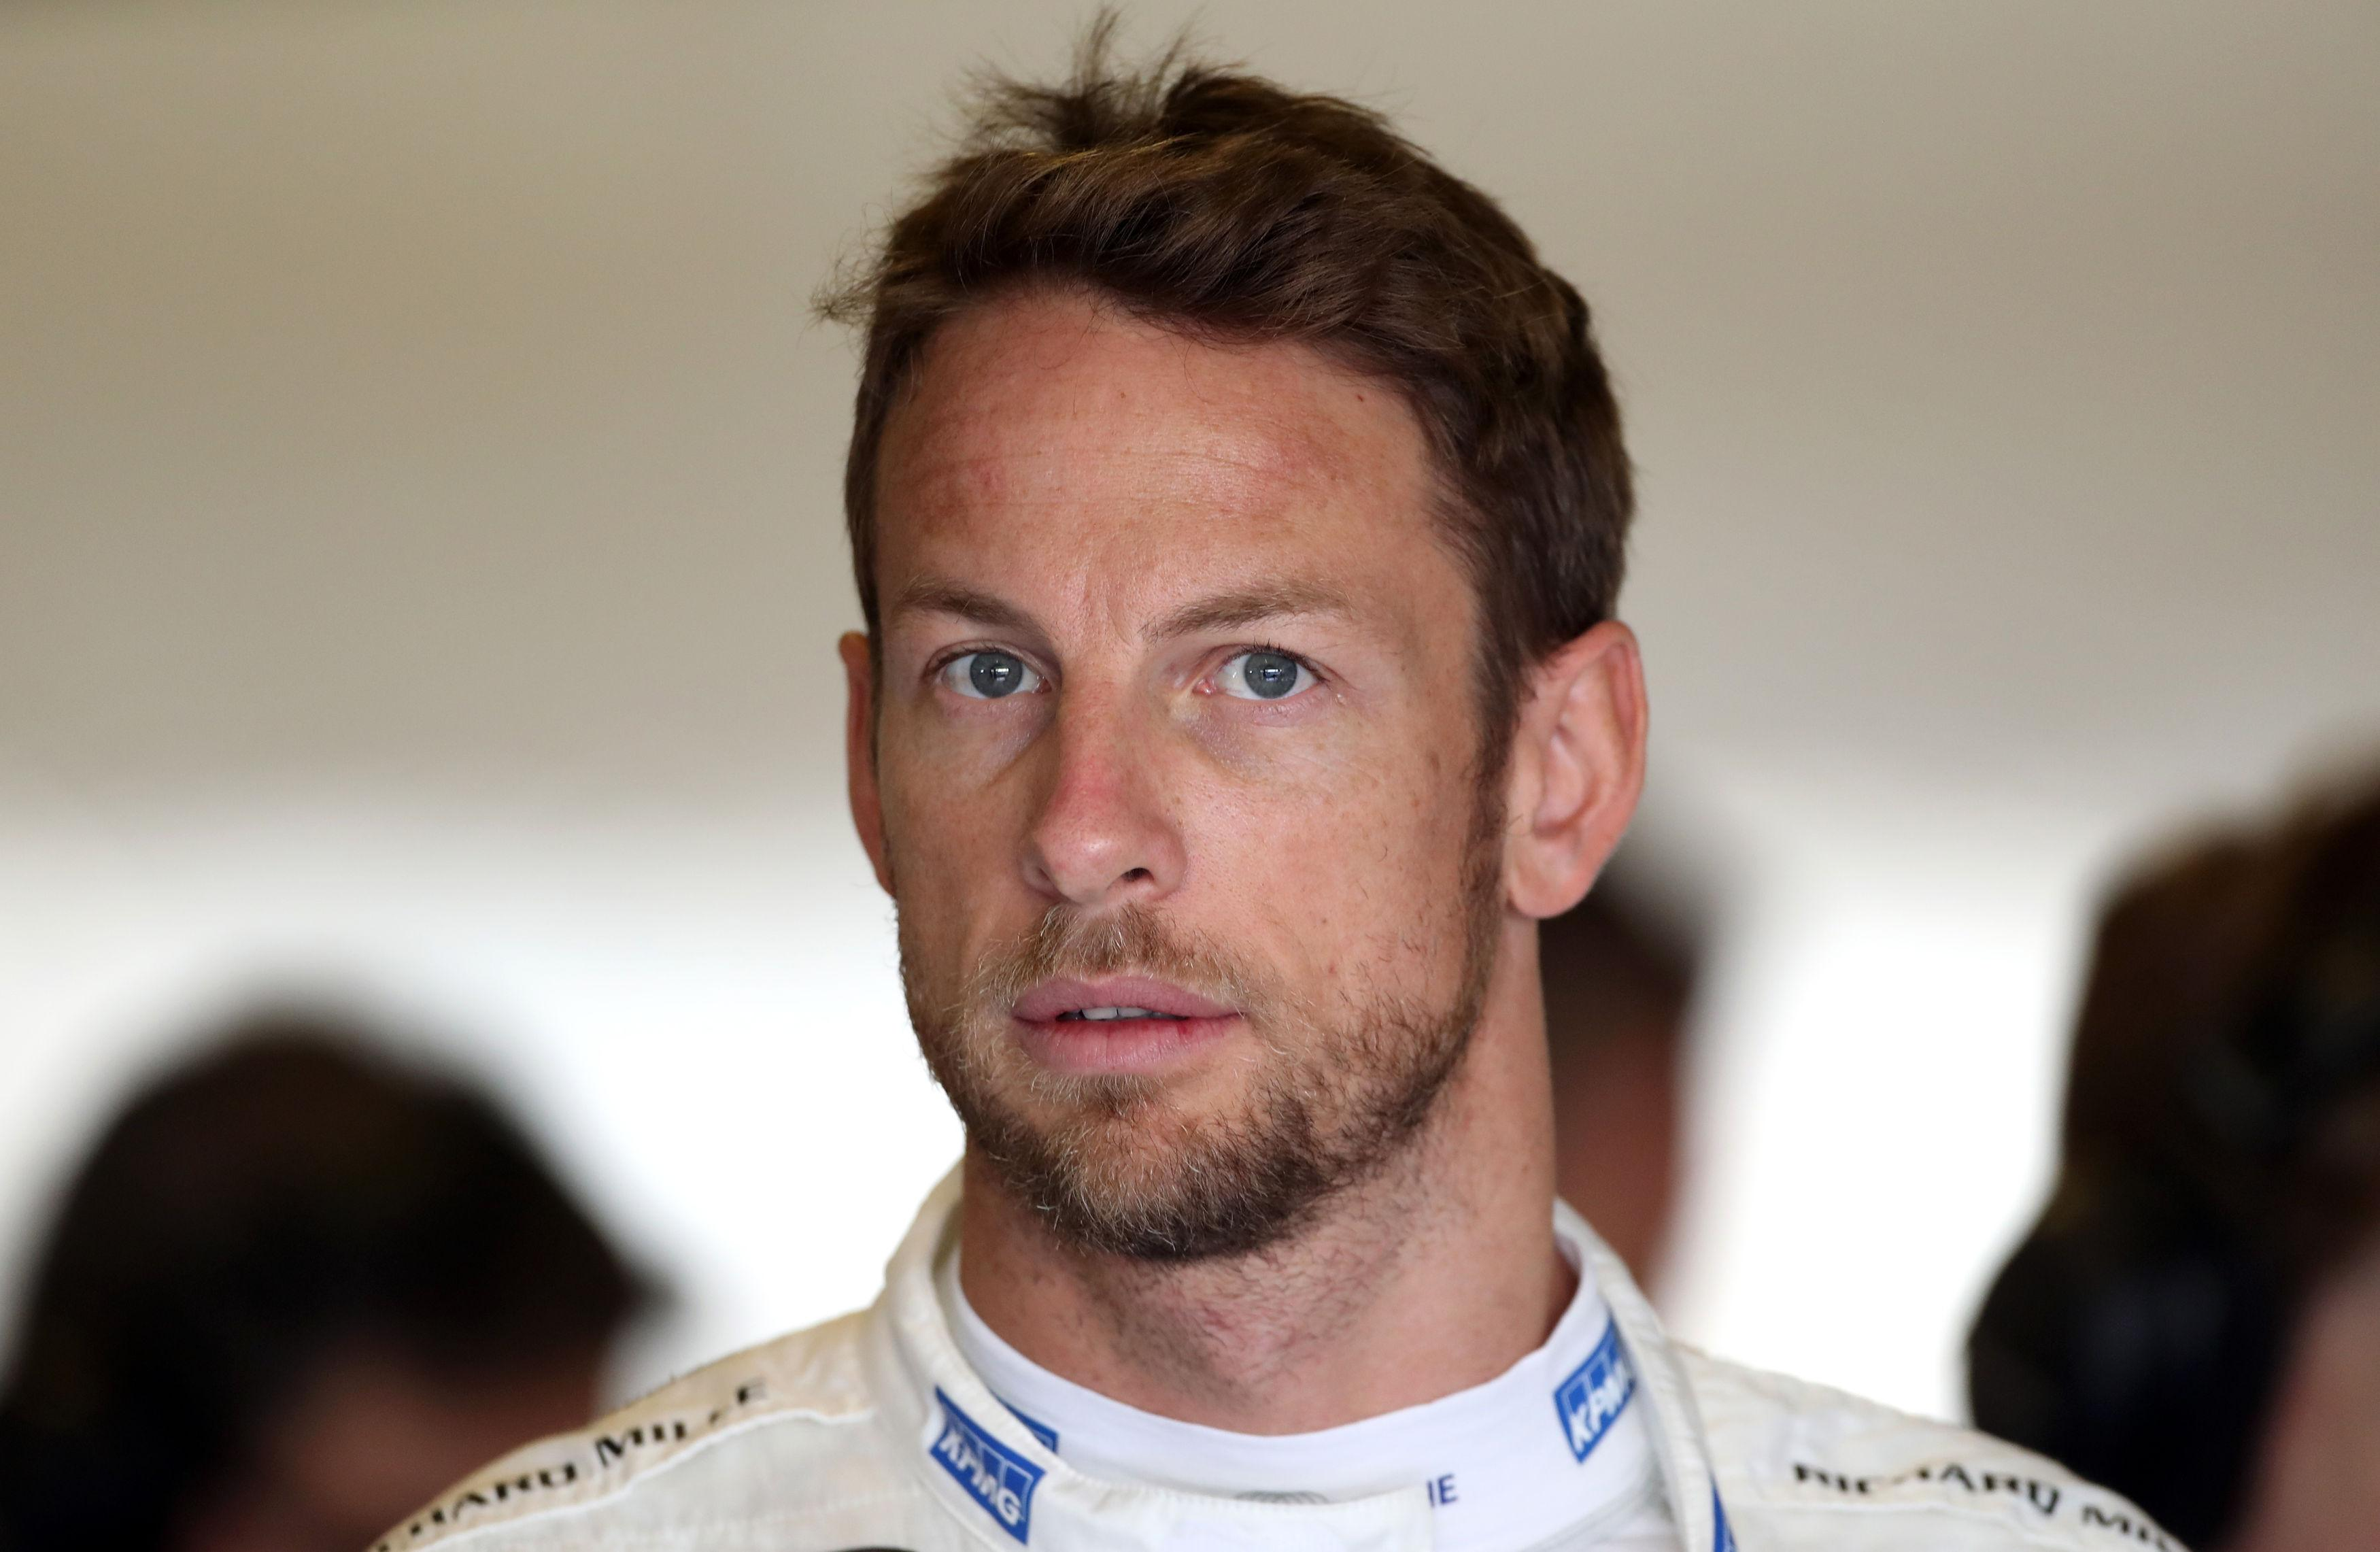 Jenson Button will not be racing at the British Grand Prix after leaving Formula One last year